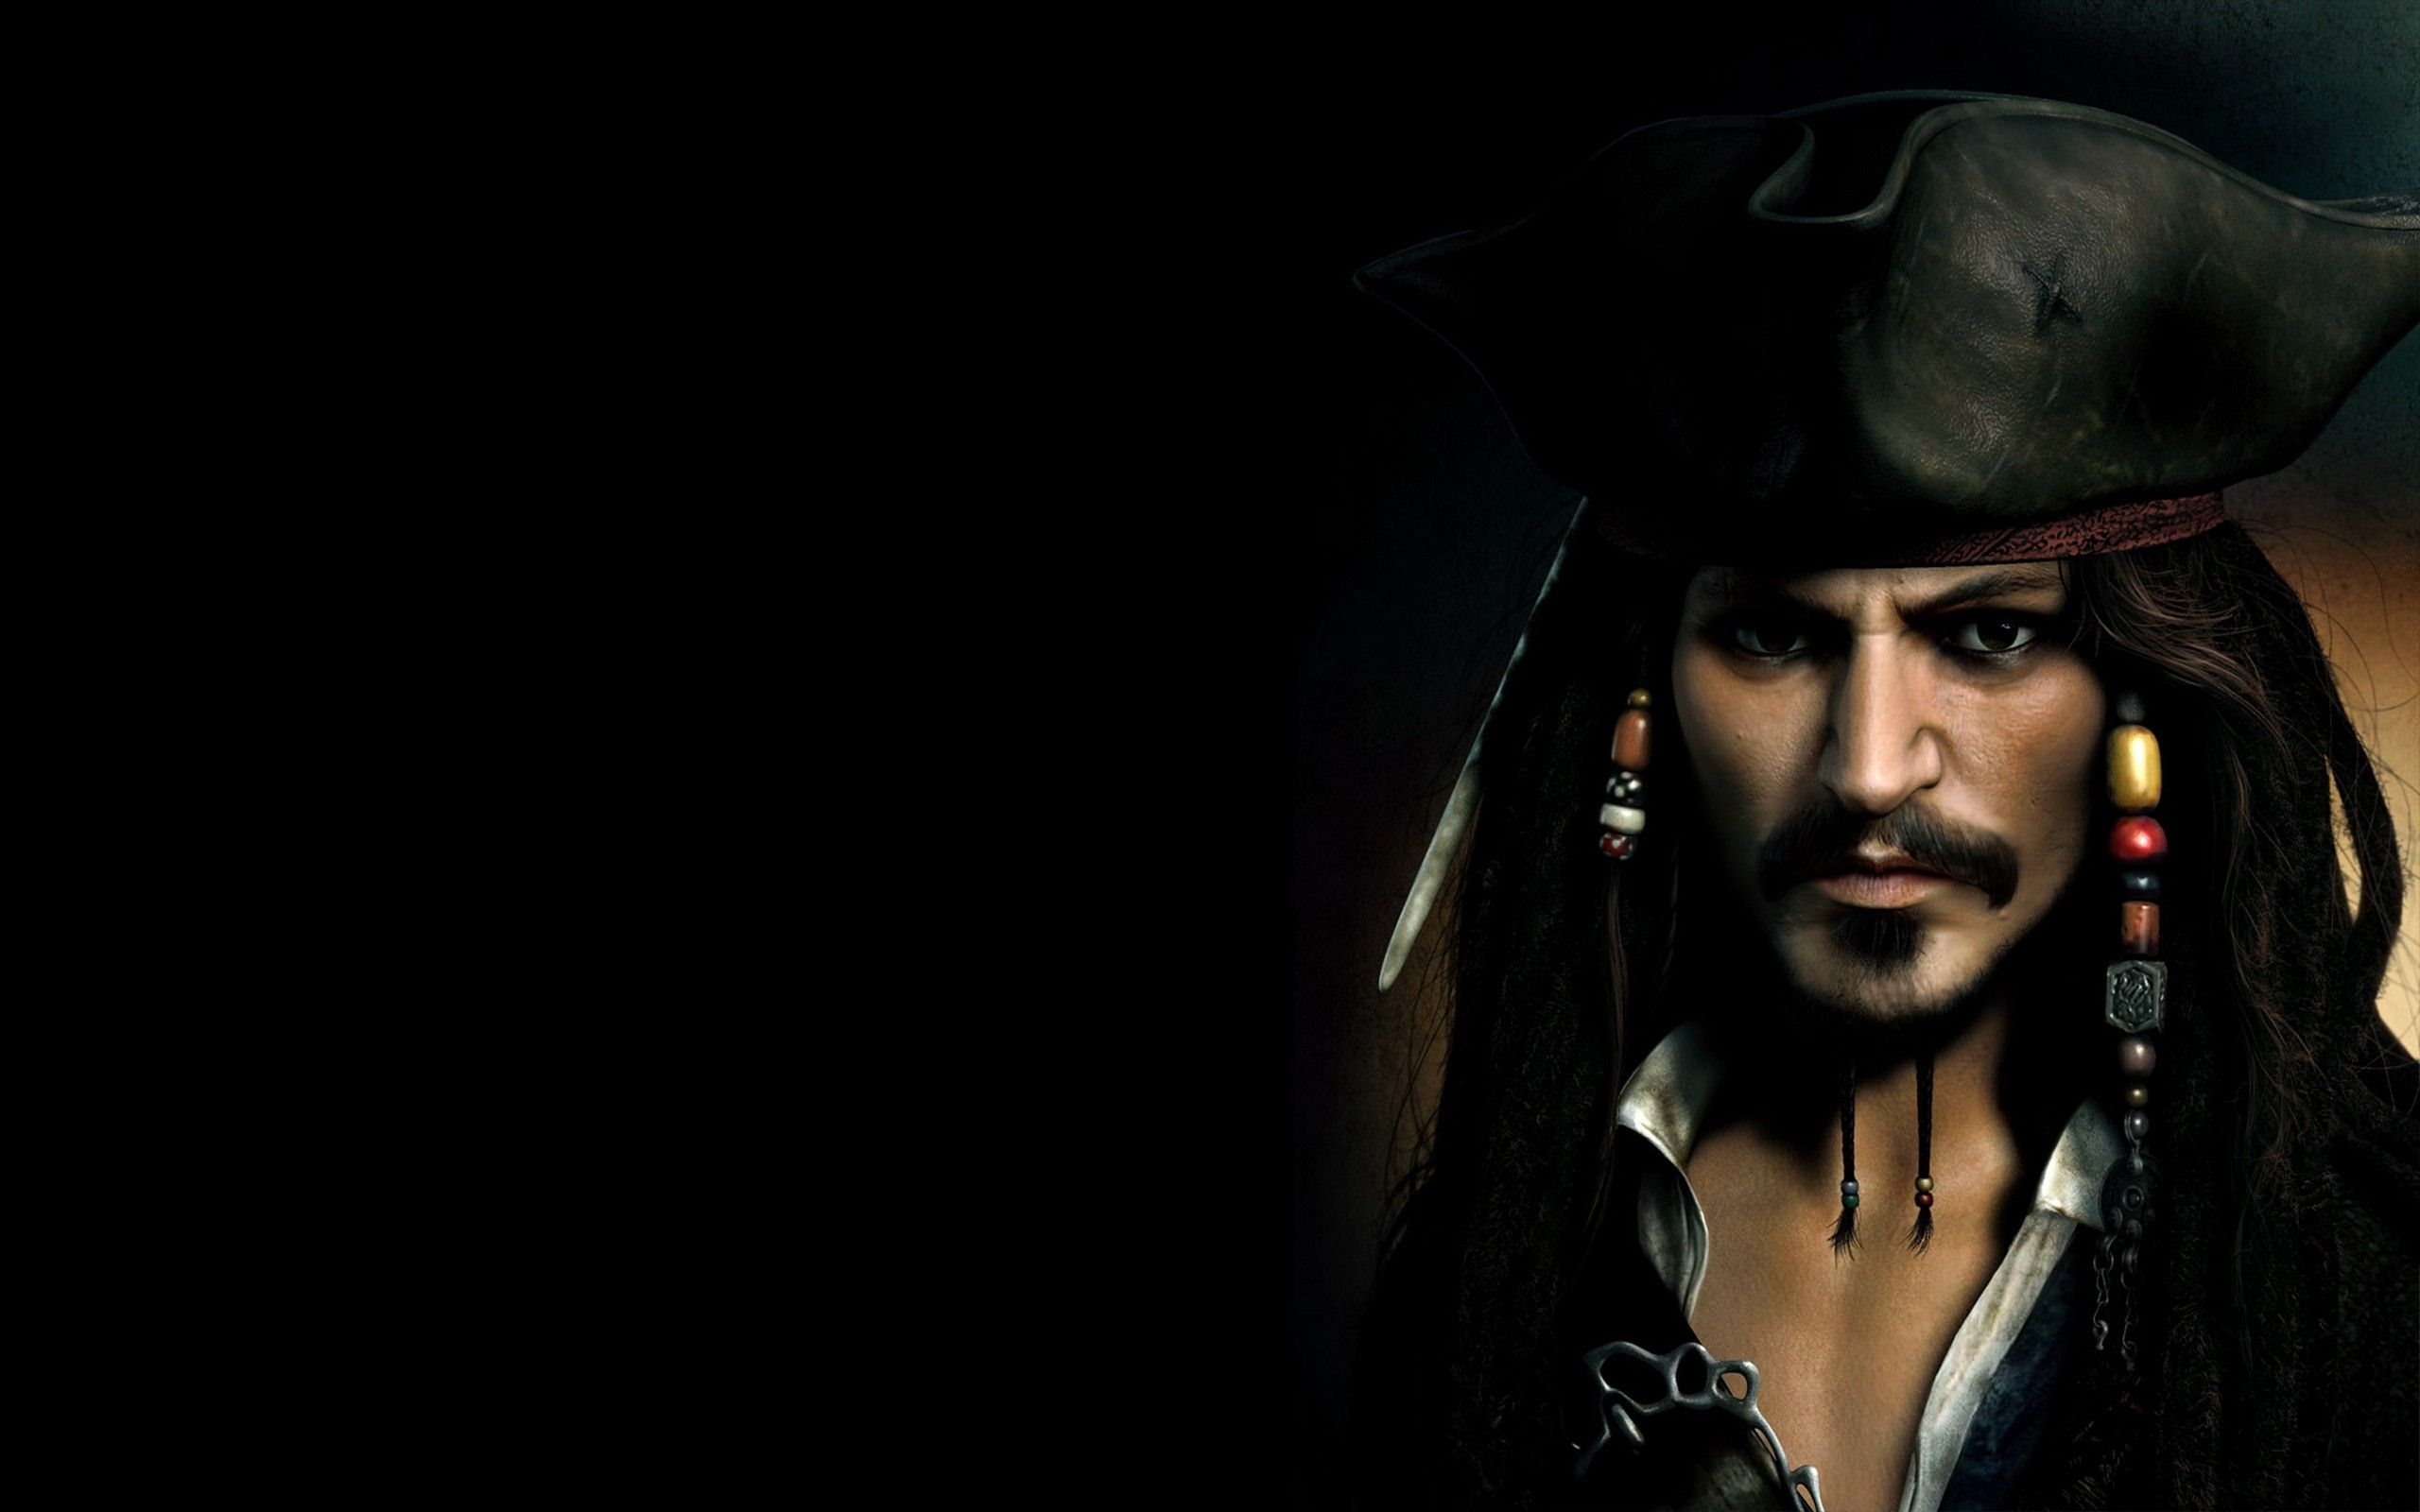 Johnny Depp Hd Wallpapers Free Download Latest Johnny Depp Hd